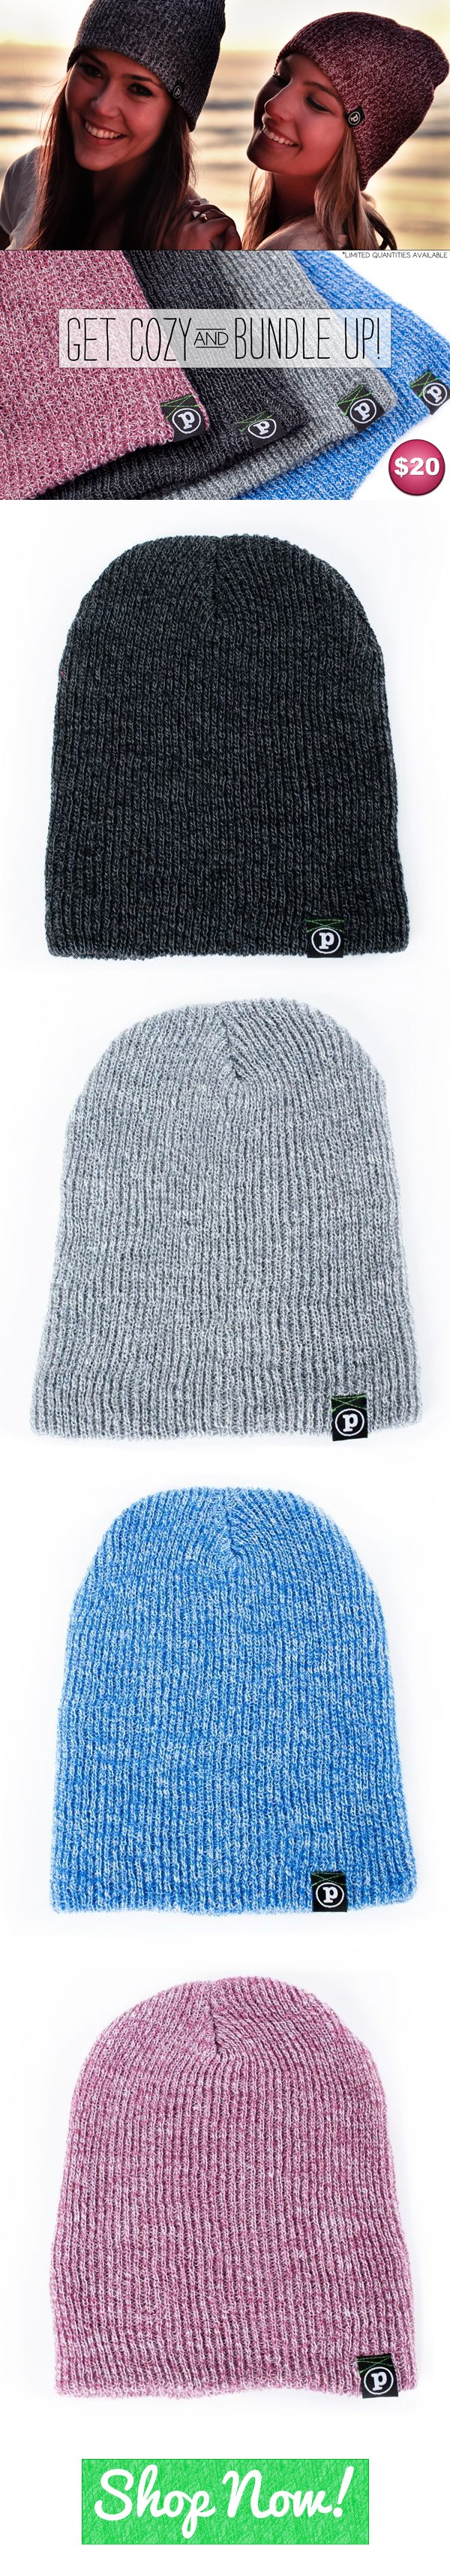 Beanies are back! Just in time for XMAS! ;)